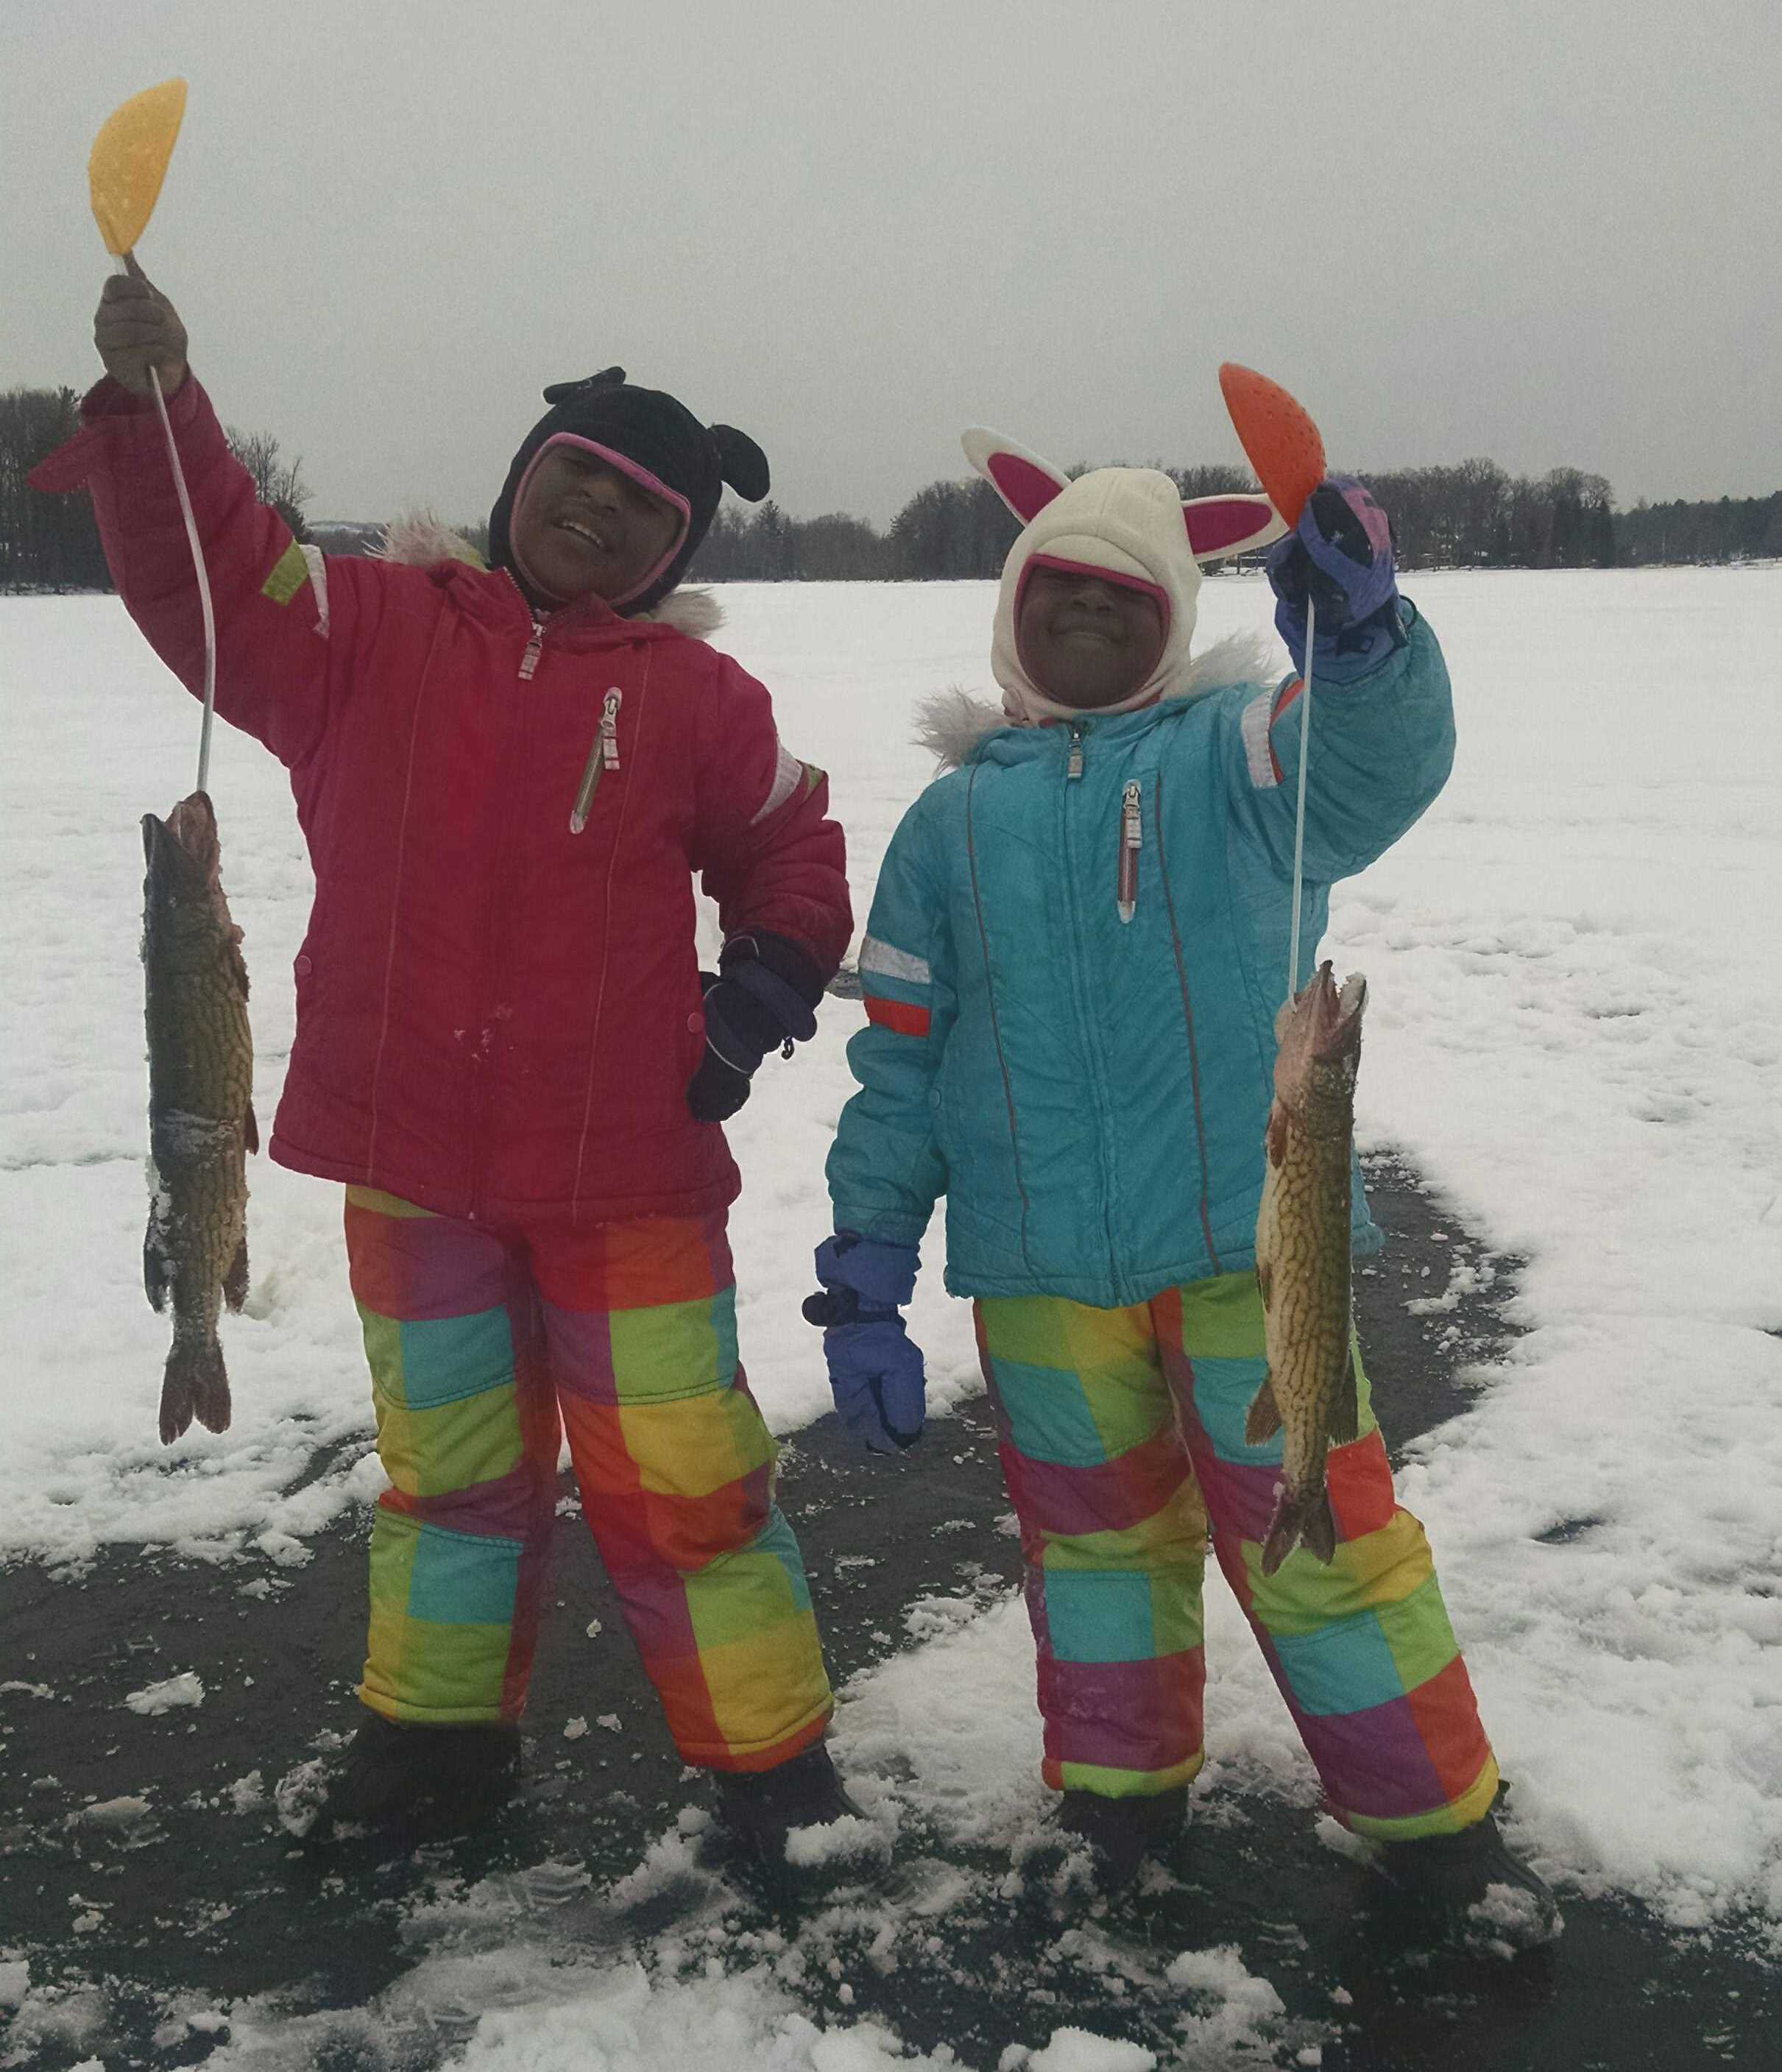 ice fishing | New York State Parks Blog